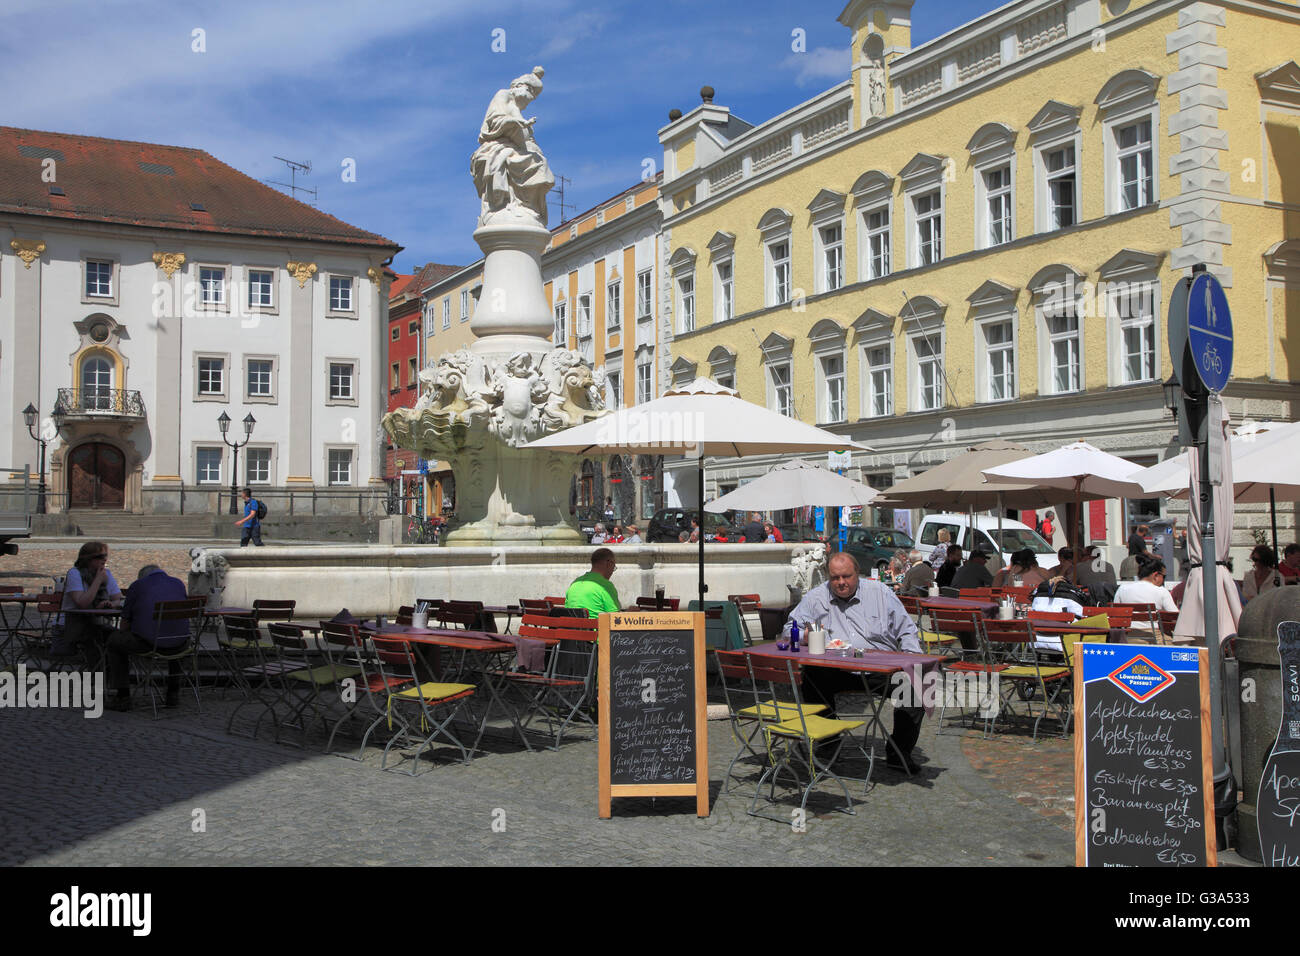 Die Küche Cafe Passau Passau Restaurant High Resolution Stock Photography And Images - Alamy